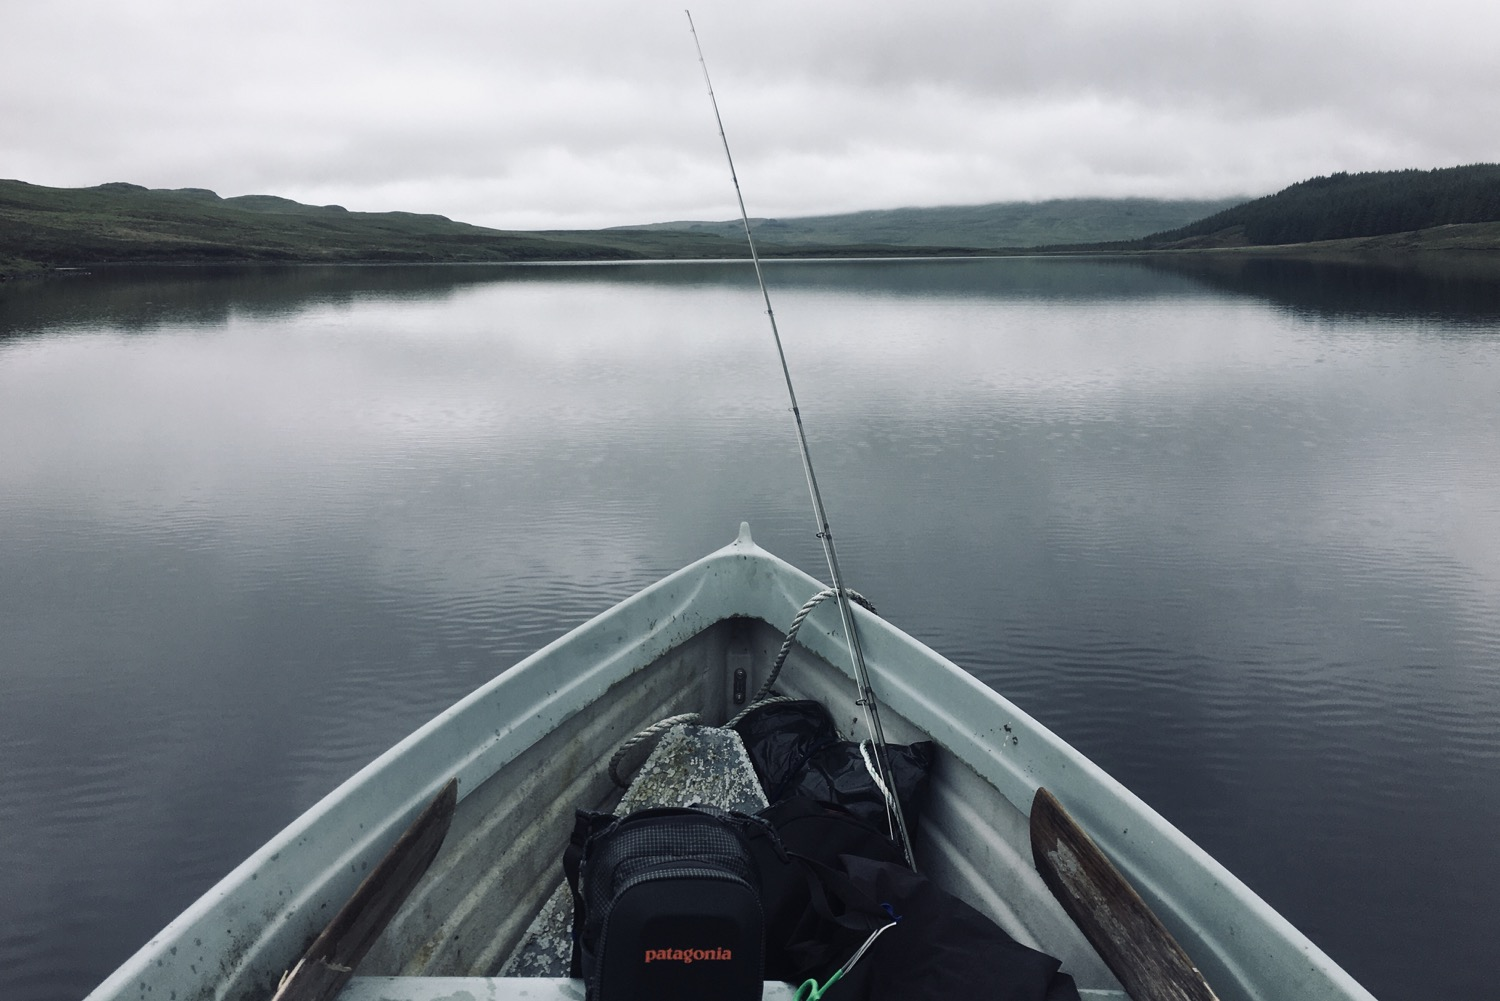 A lovely calm day on the Loch